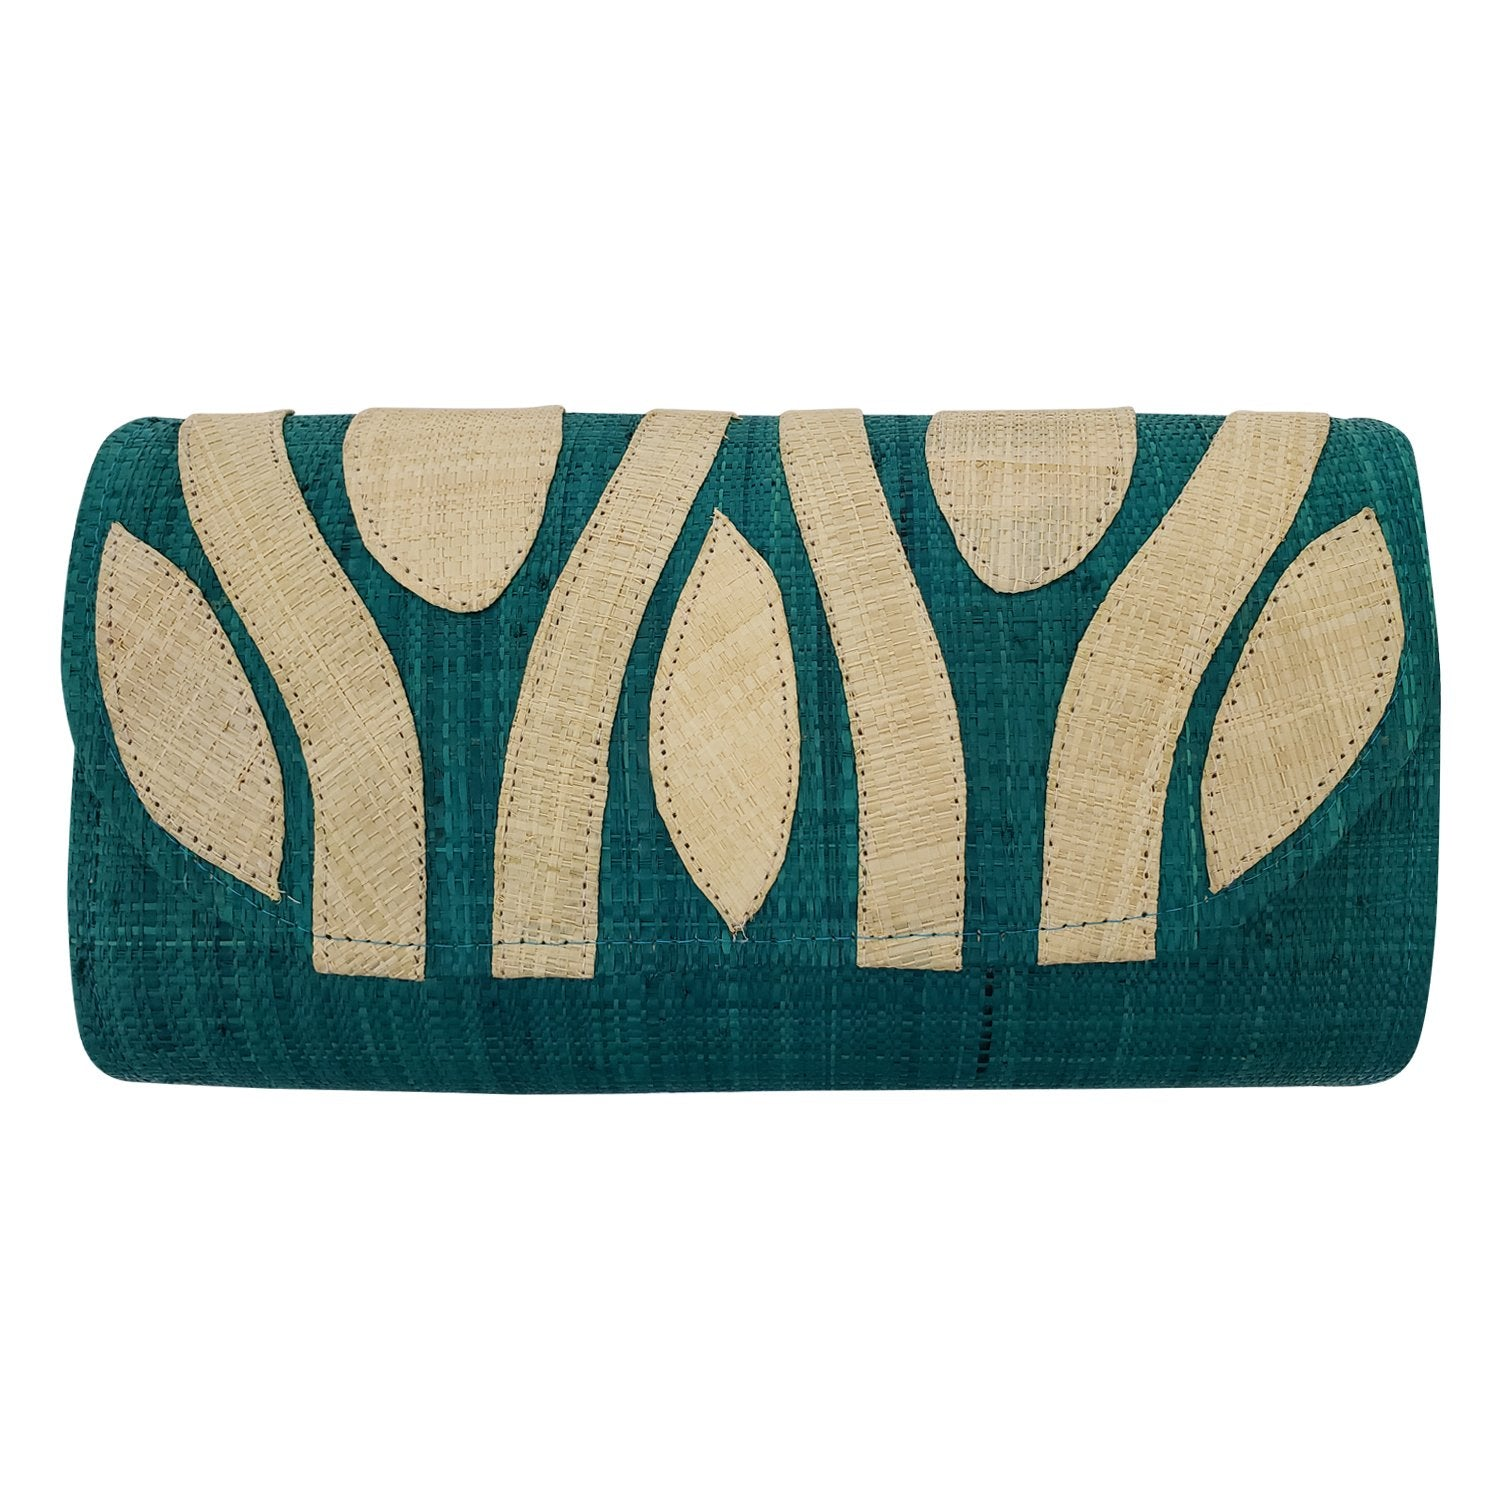 Authentic Handwoven Blue-Green Madagascar Raffia Clutch with Natural Accents